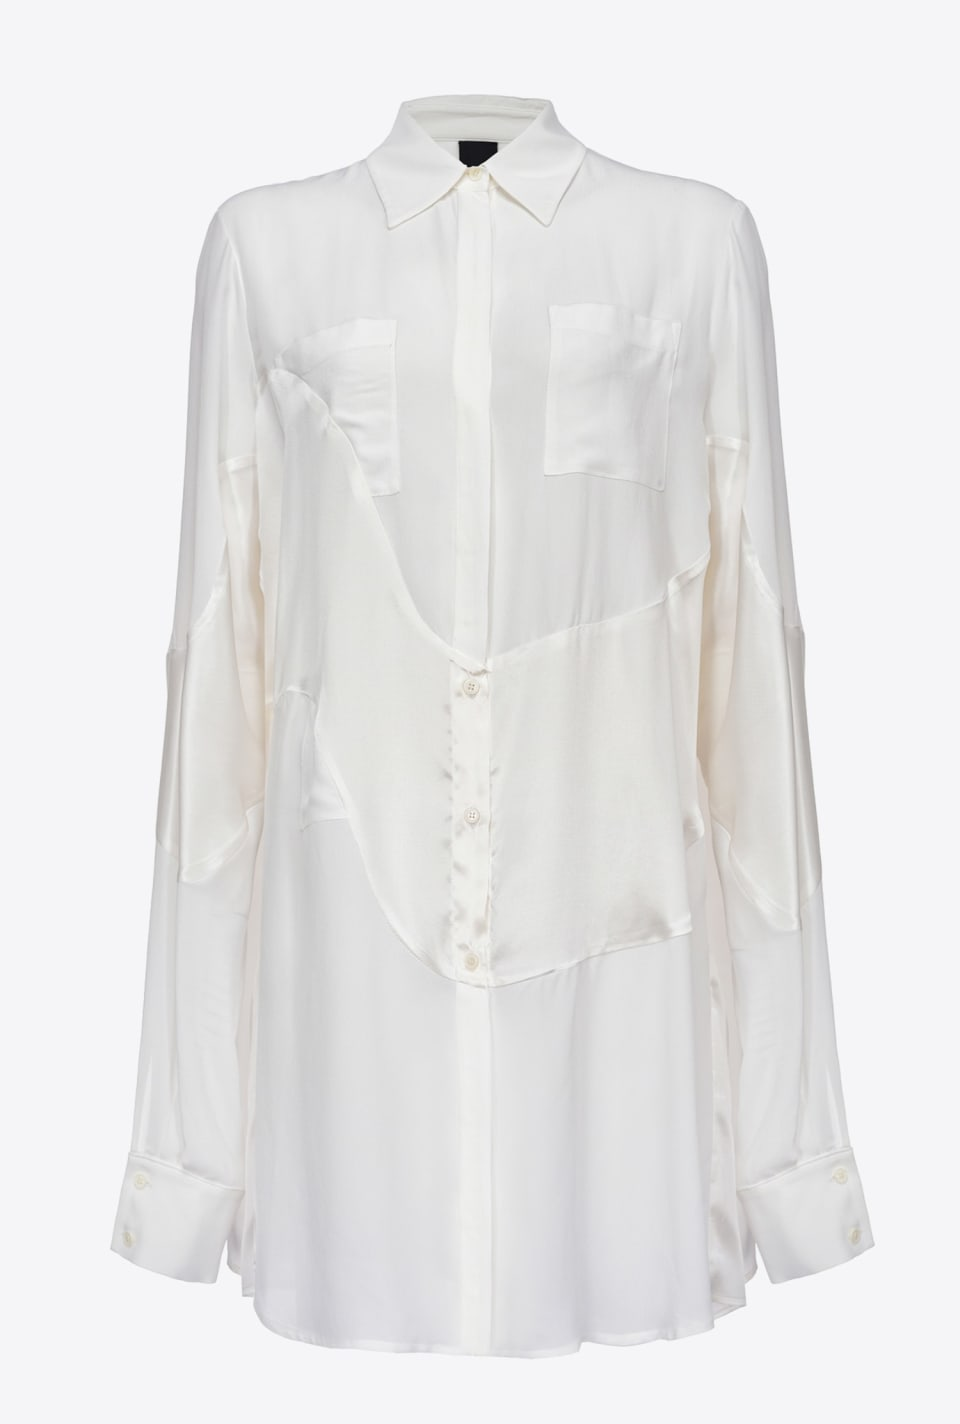 REIMAGINE cloud-effect shirt - Pinko